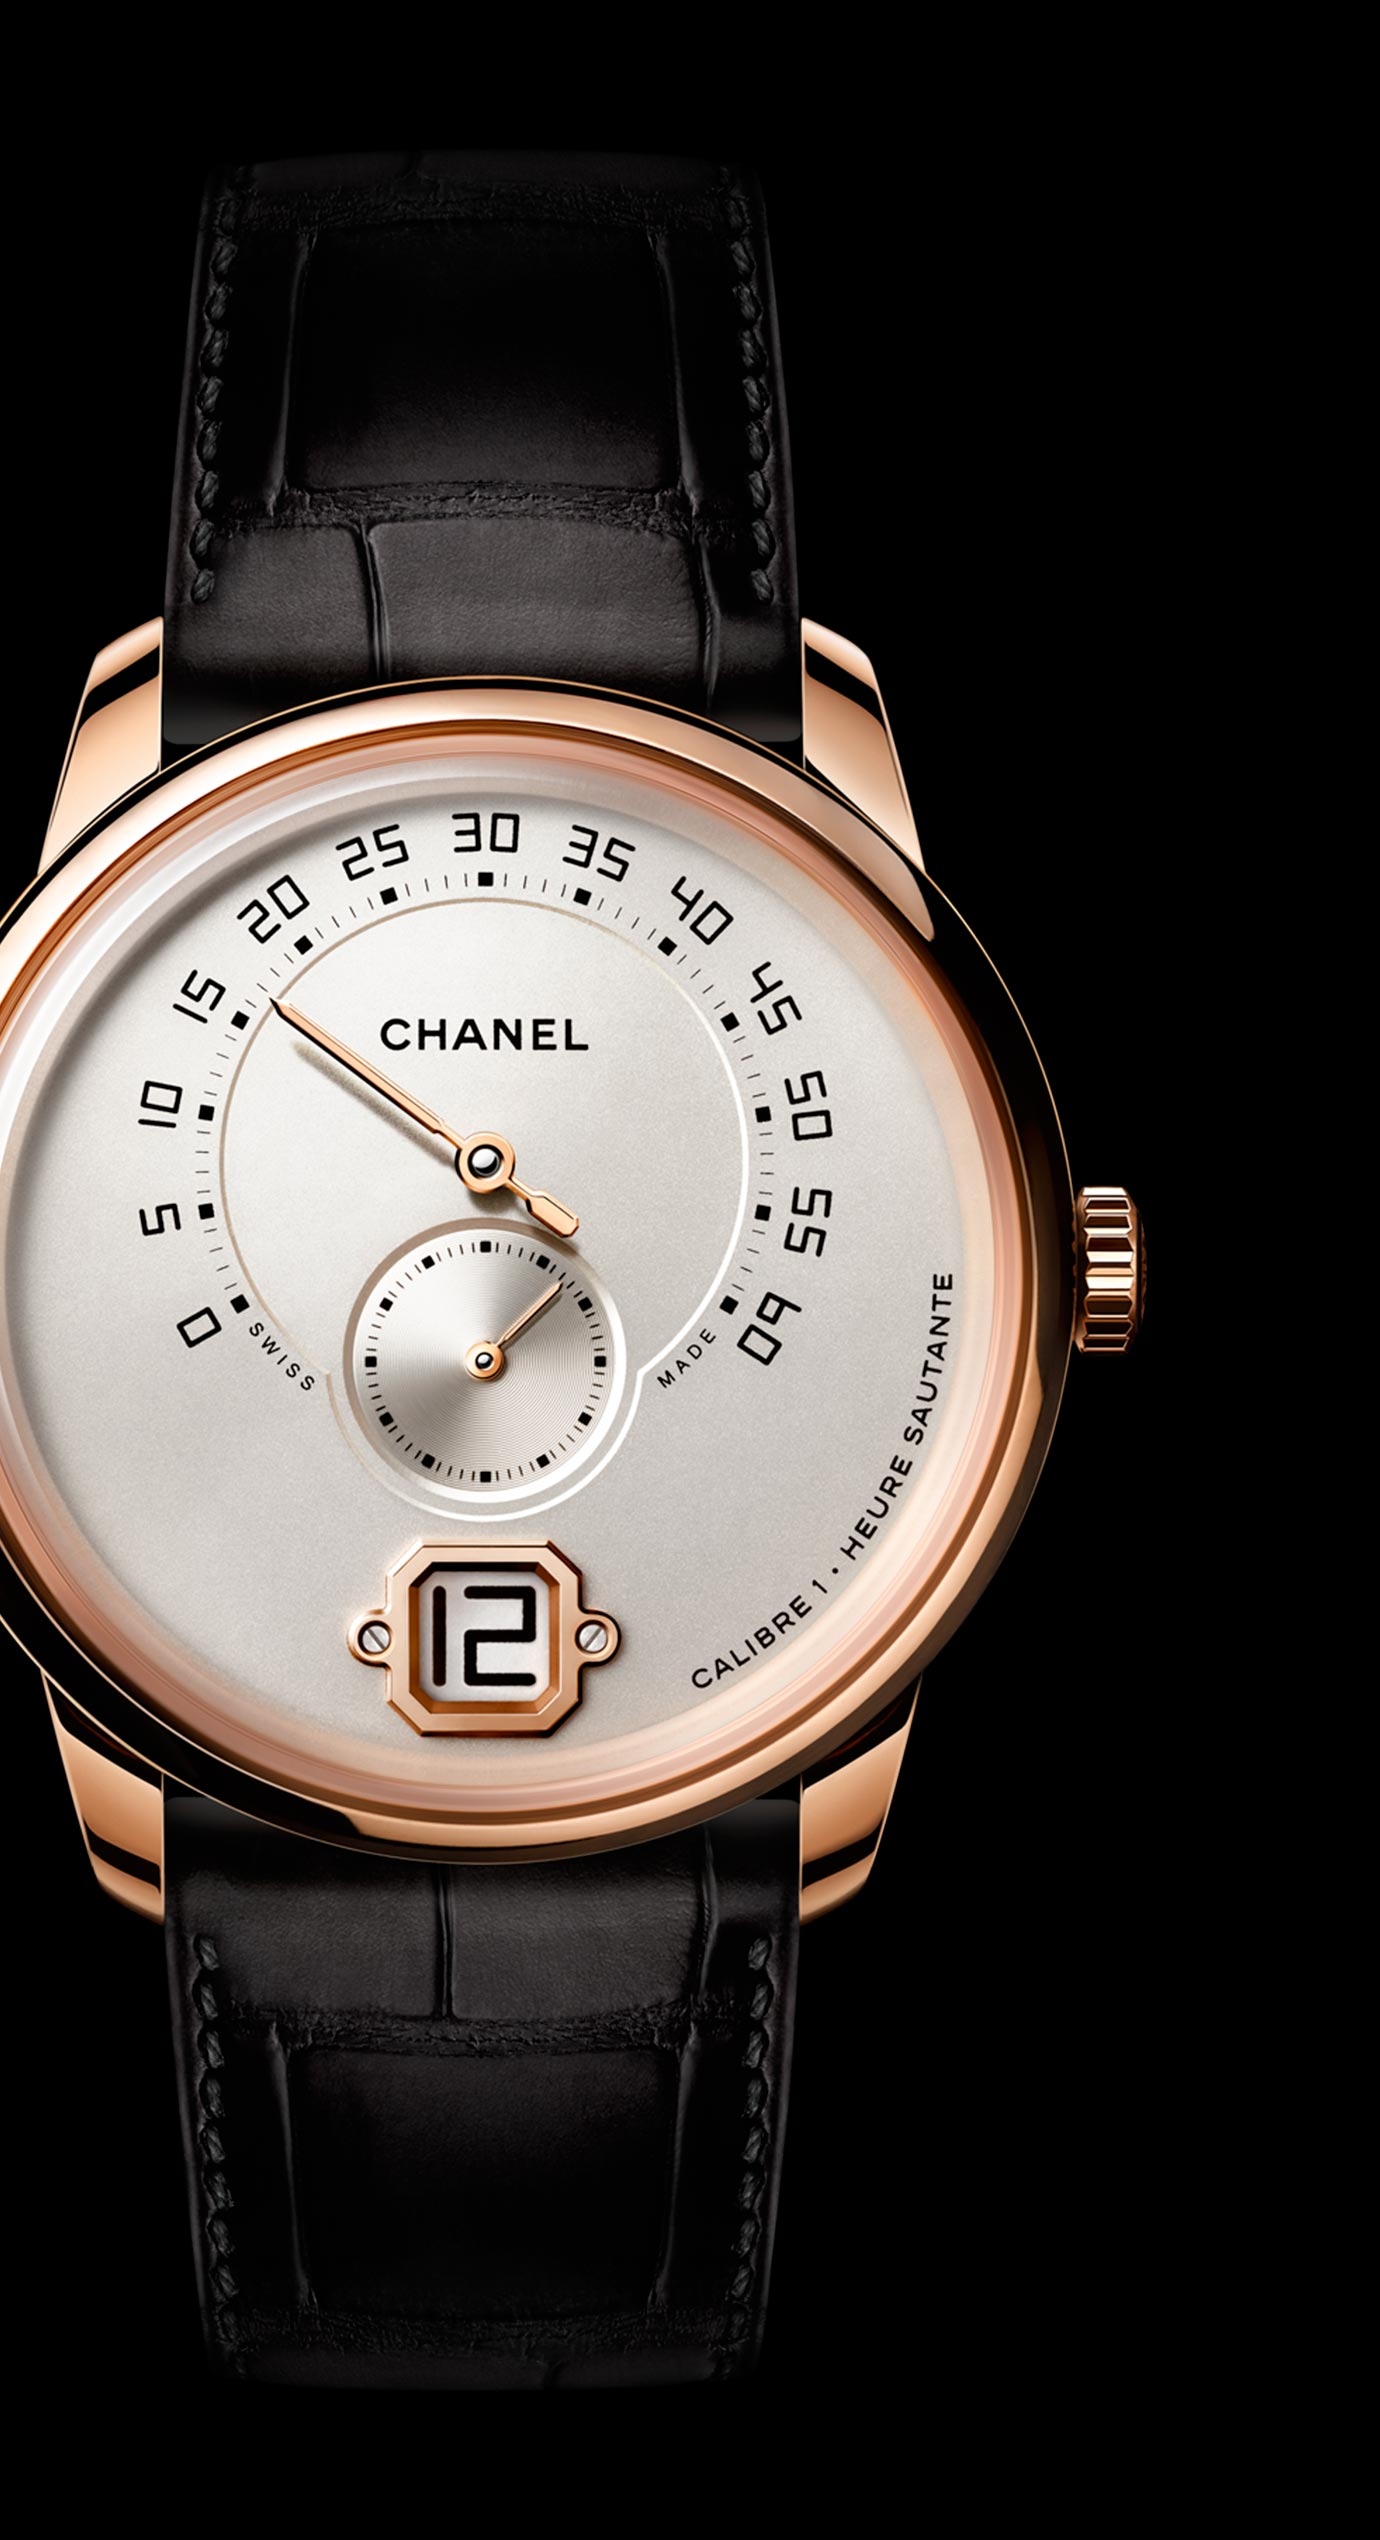 Monsieur de CHANEL watch in 18K BEIGE GOLD, ivory dial with jumping hour, 240° retrograde minutes and small second counter.